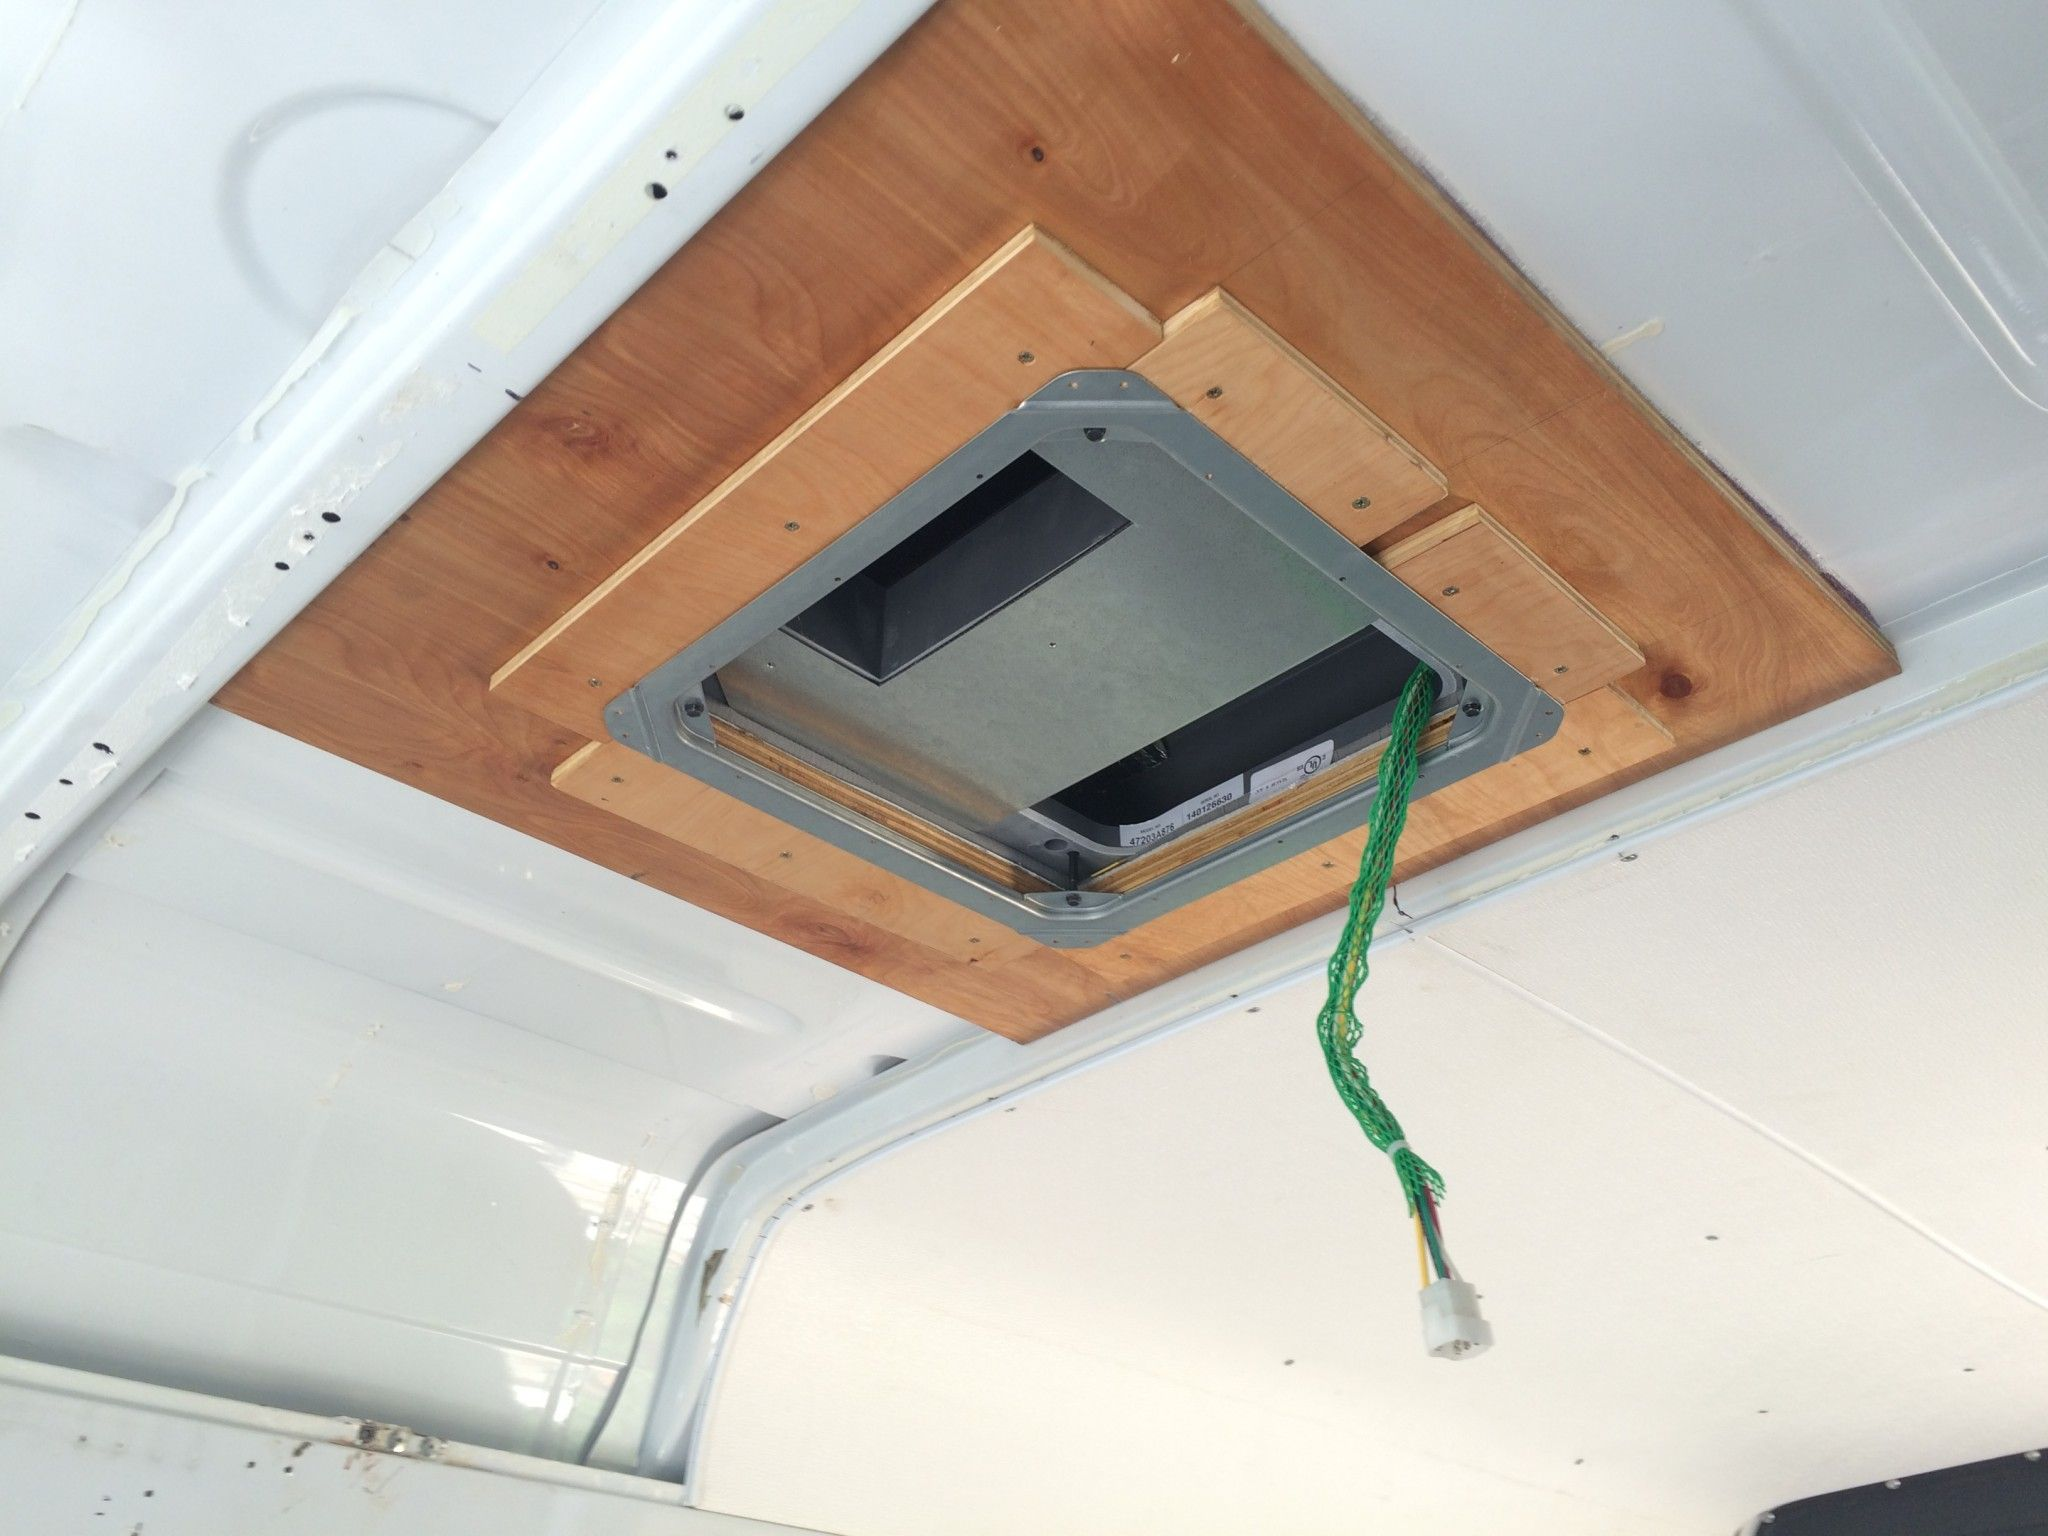 Coleman Mach 8 rooftop unit secured with the bracket and